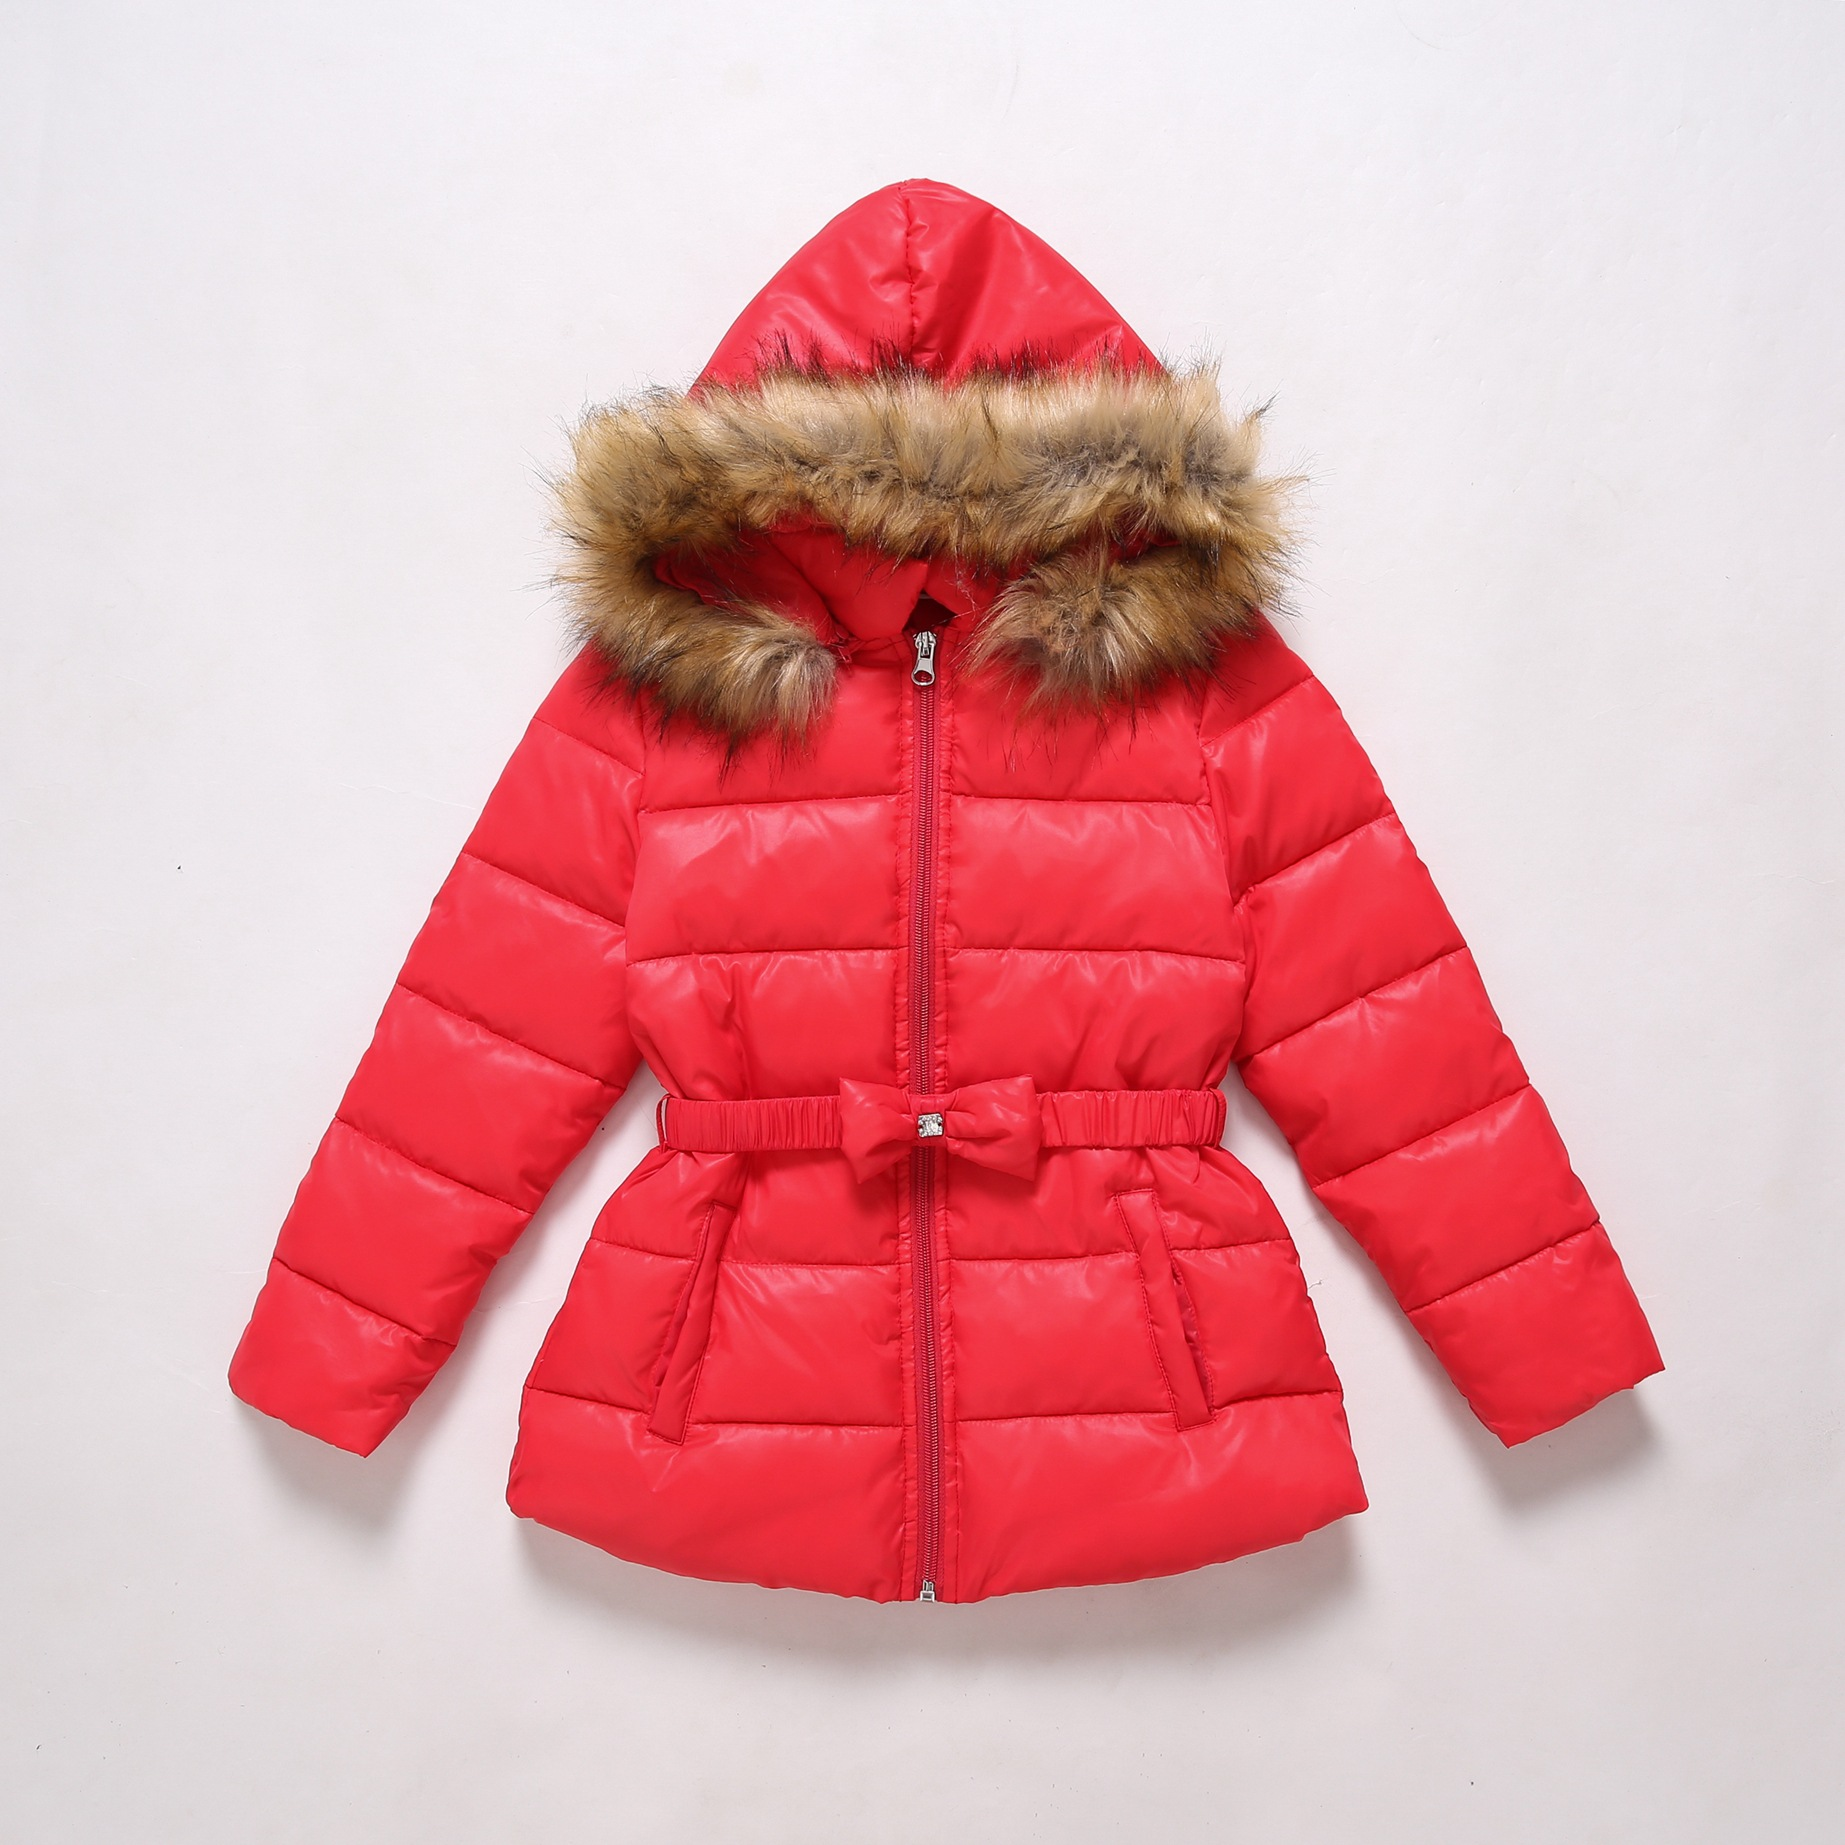 2018 Fashion Children Winter Jacket Girl Red Cotton-padded Coat Kids Warm Thick Fur Collar Hooded Outwear 4 5 6 7 8 9 10 Yrs 2015 winter new women medium long 8 colors l 4xl hooded wadded outwear coat fur collar thick warm cotton jacket parkas lj2992